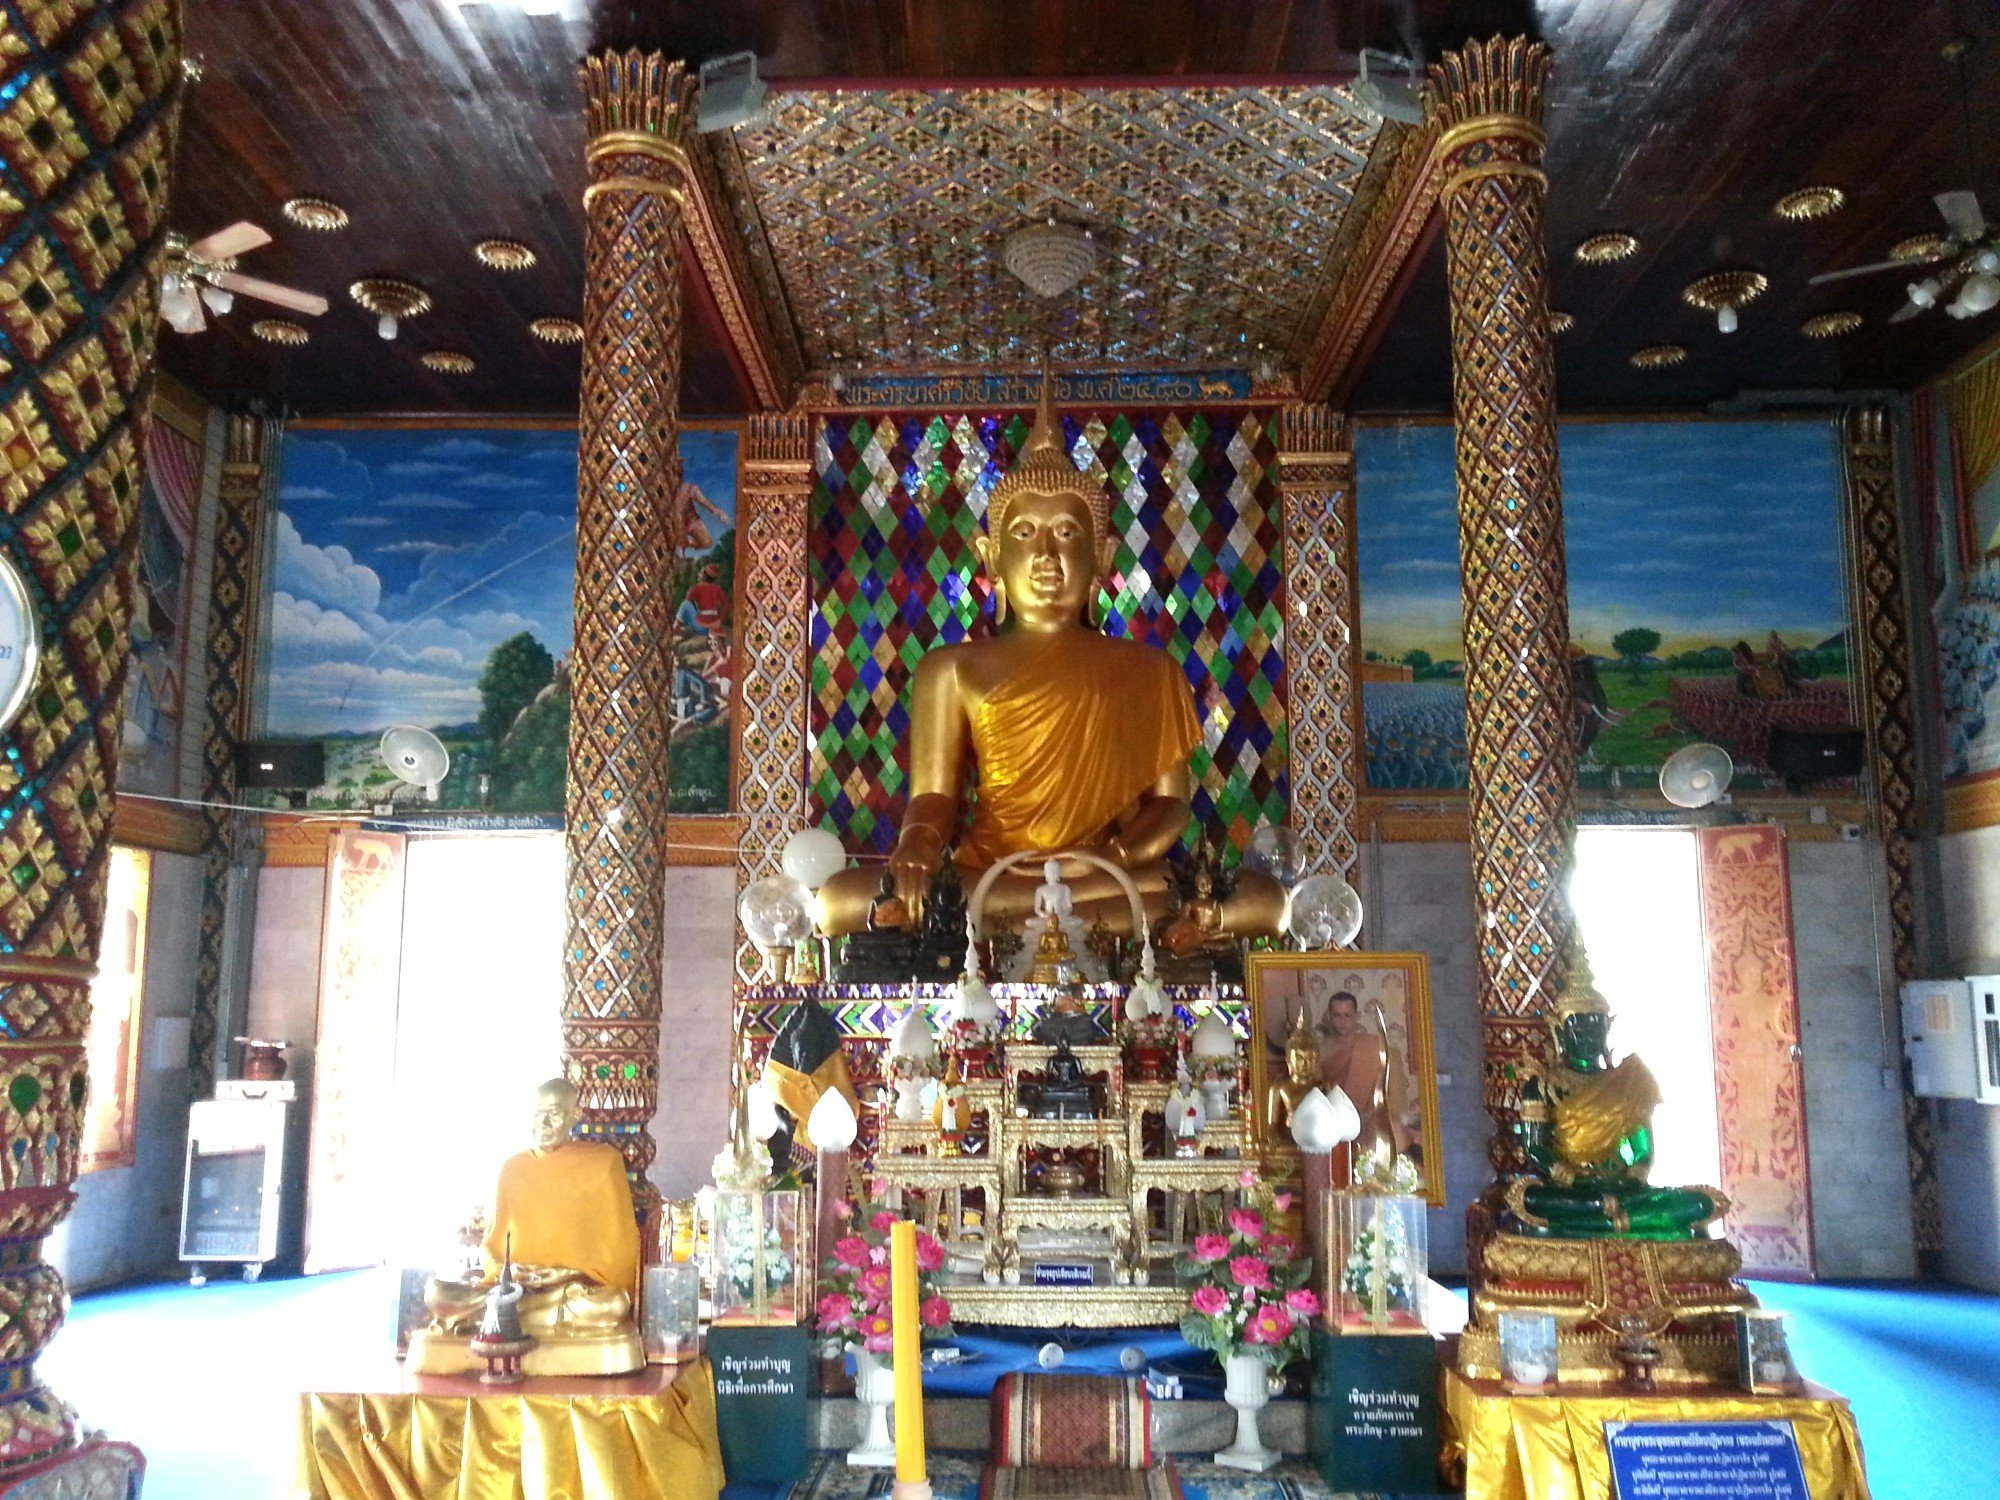 Inside the Assembly Hall at Wat Chammathewi